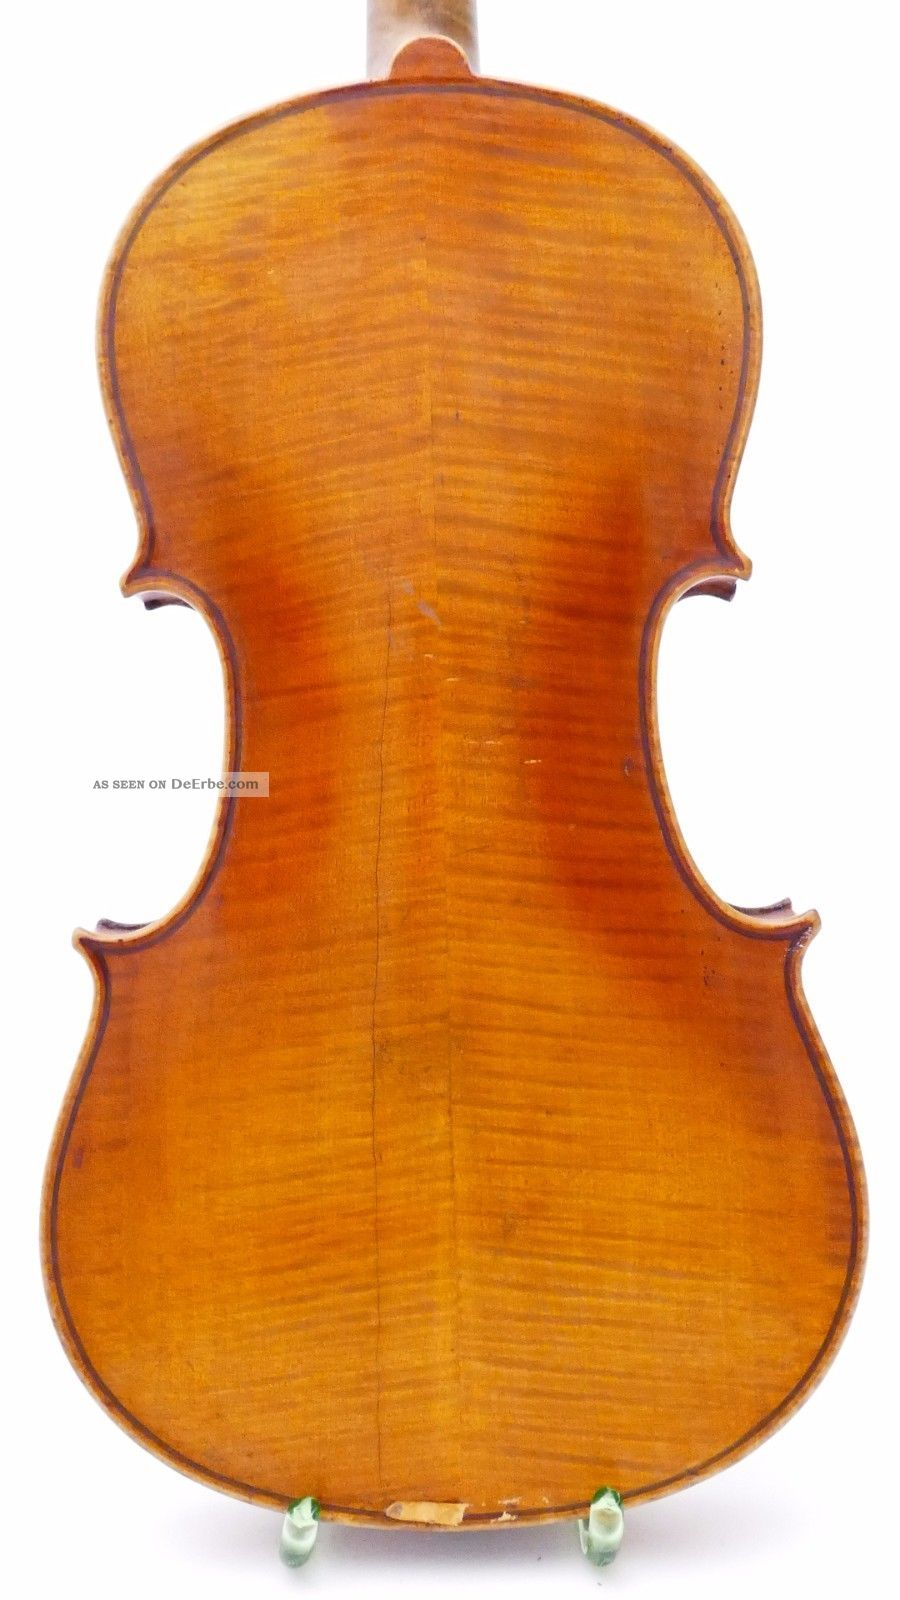 Alte Antike Geige Antique Old Violin Violini Violine German Germany No Gitarre Musikinstrumente Bild